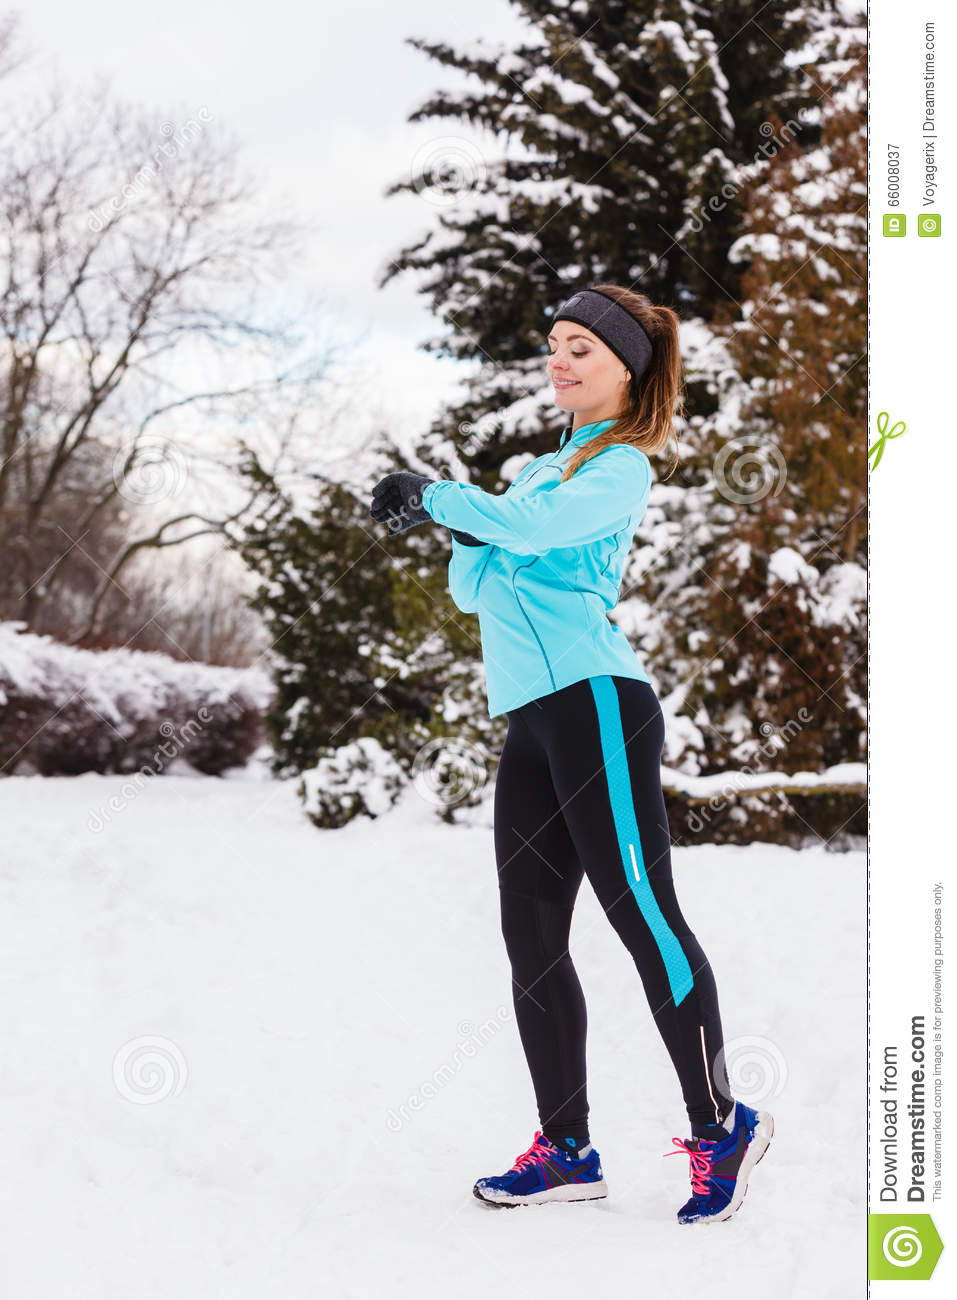 female fitness sport model outdoor in cold winter weather royalty